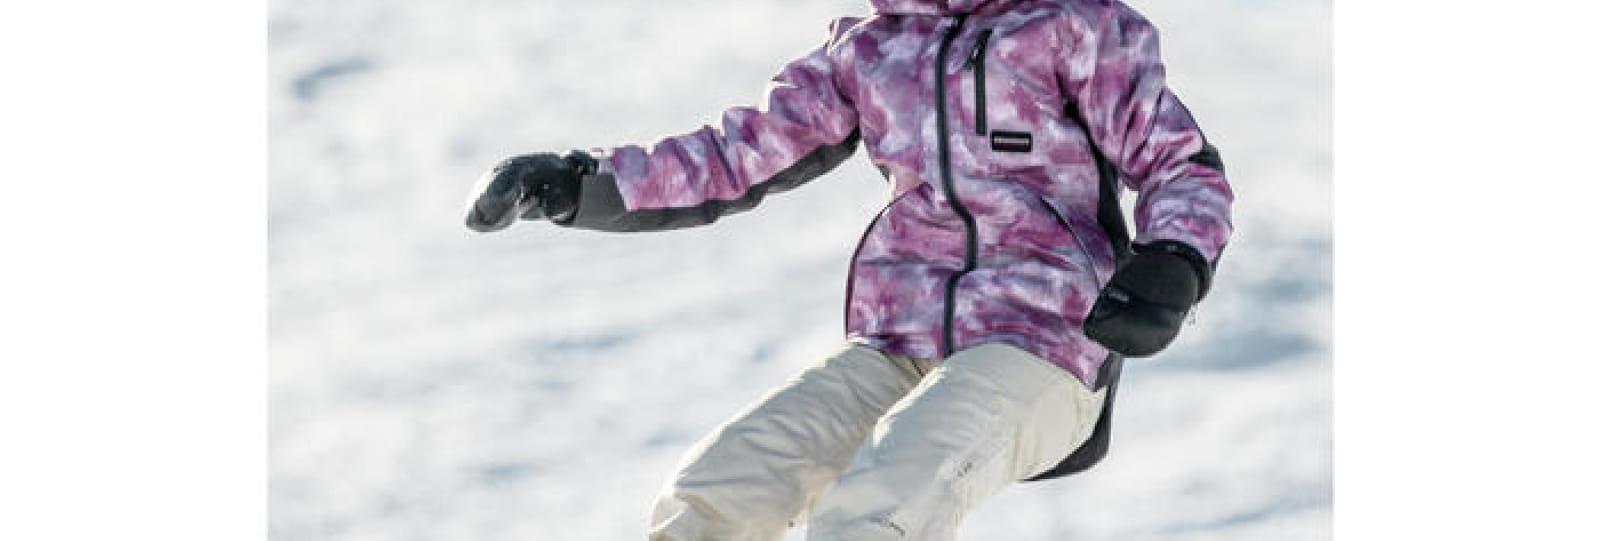 Snowboard Piroulet